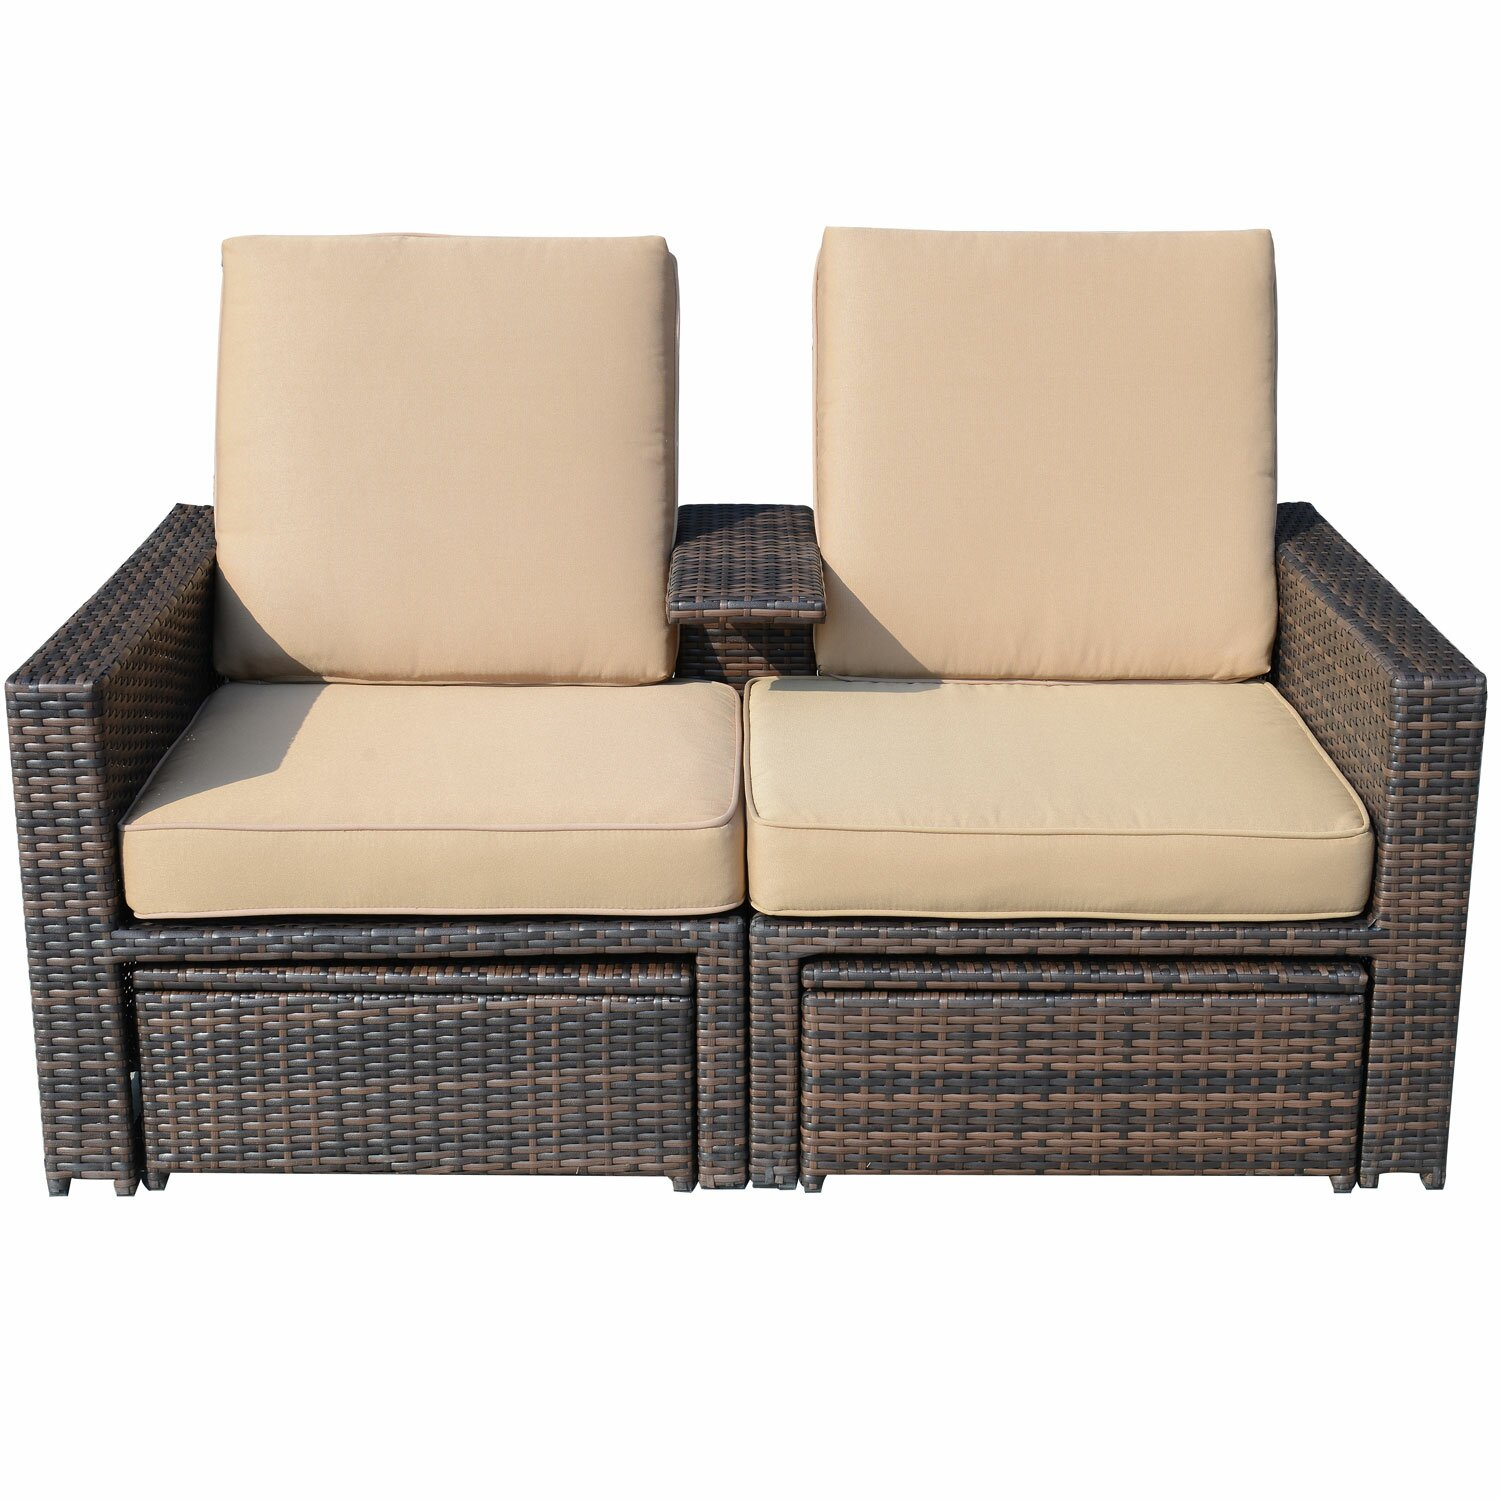 Outsunny 4 piece double chaise lounge with cushion for Chaise double lounge